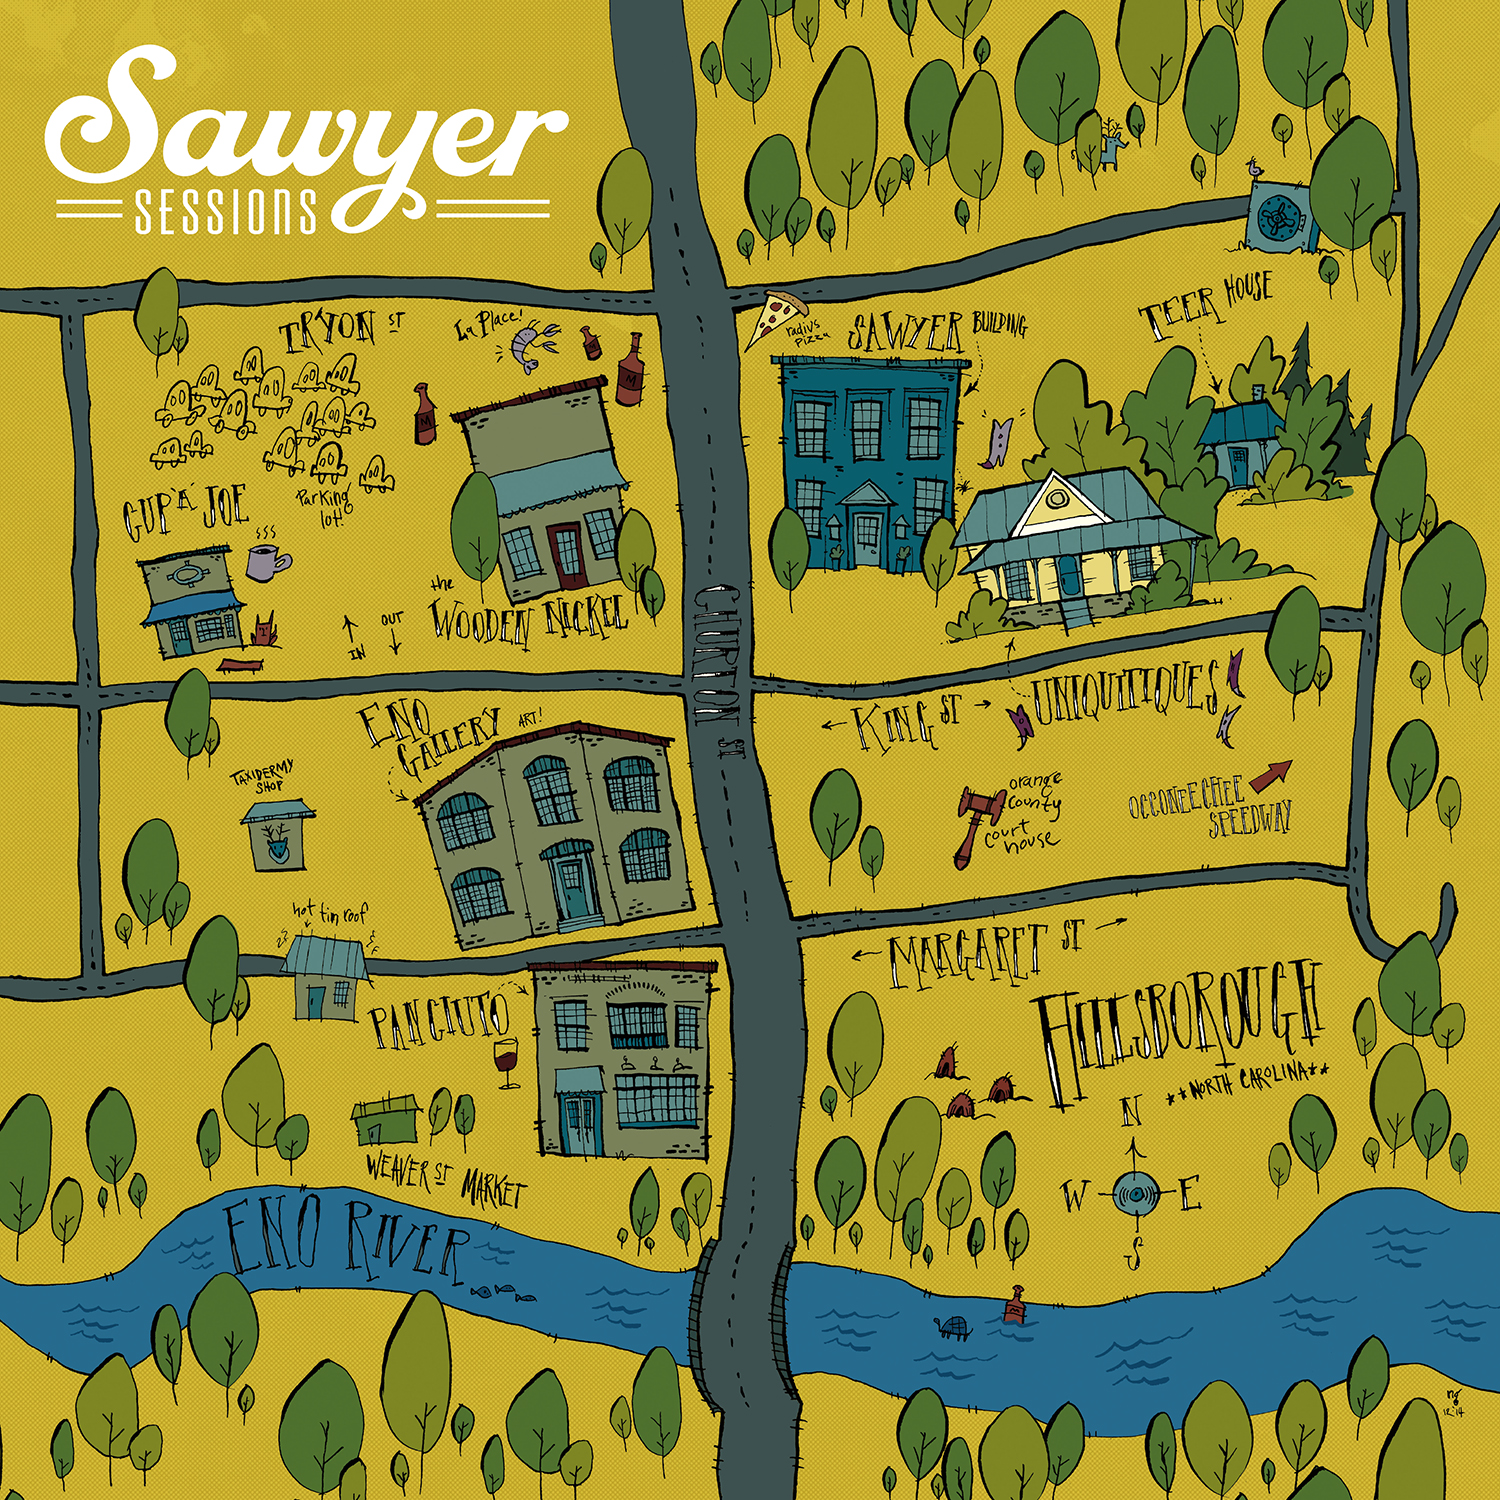 - Sawyer Sessions Vol 1